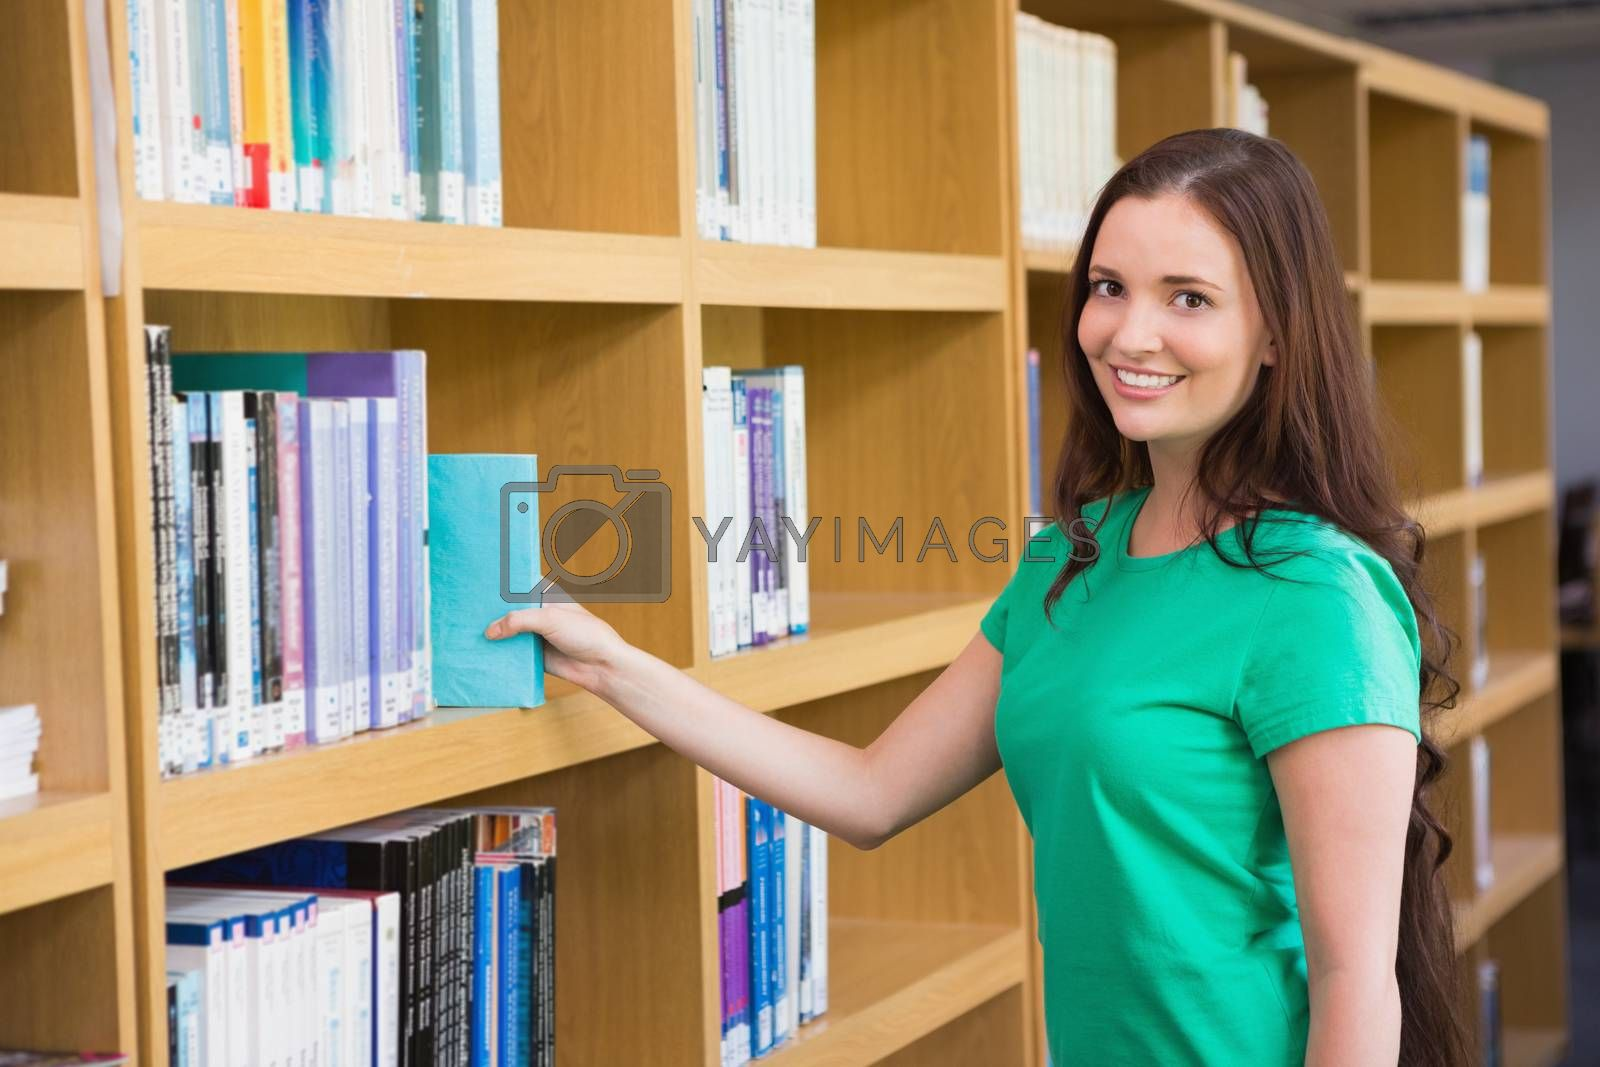 Student picking a book from shelf in library by Wavebreakmedia